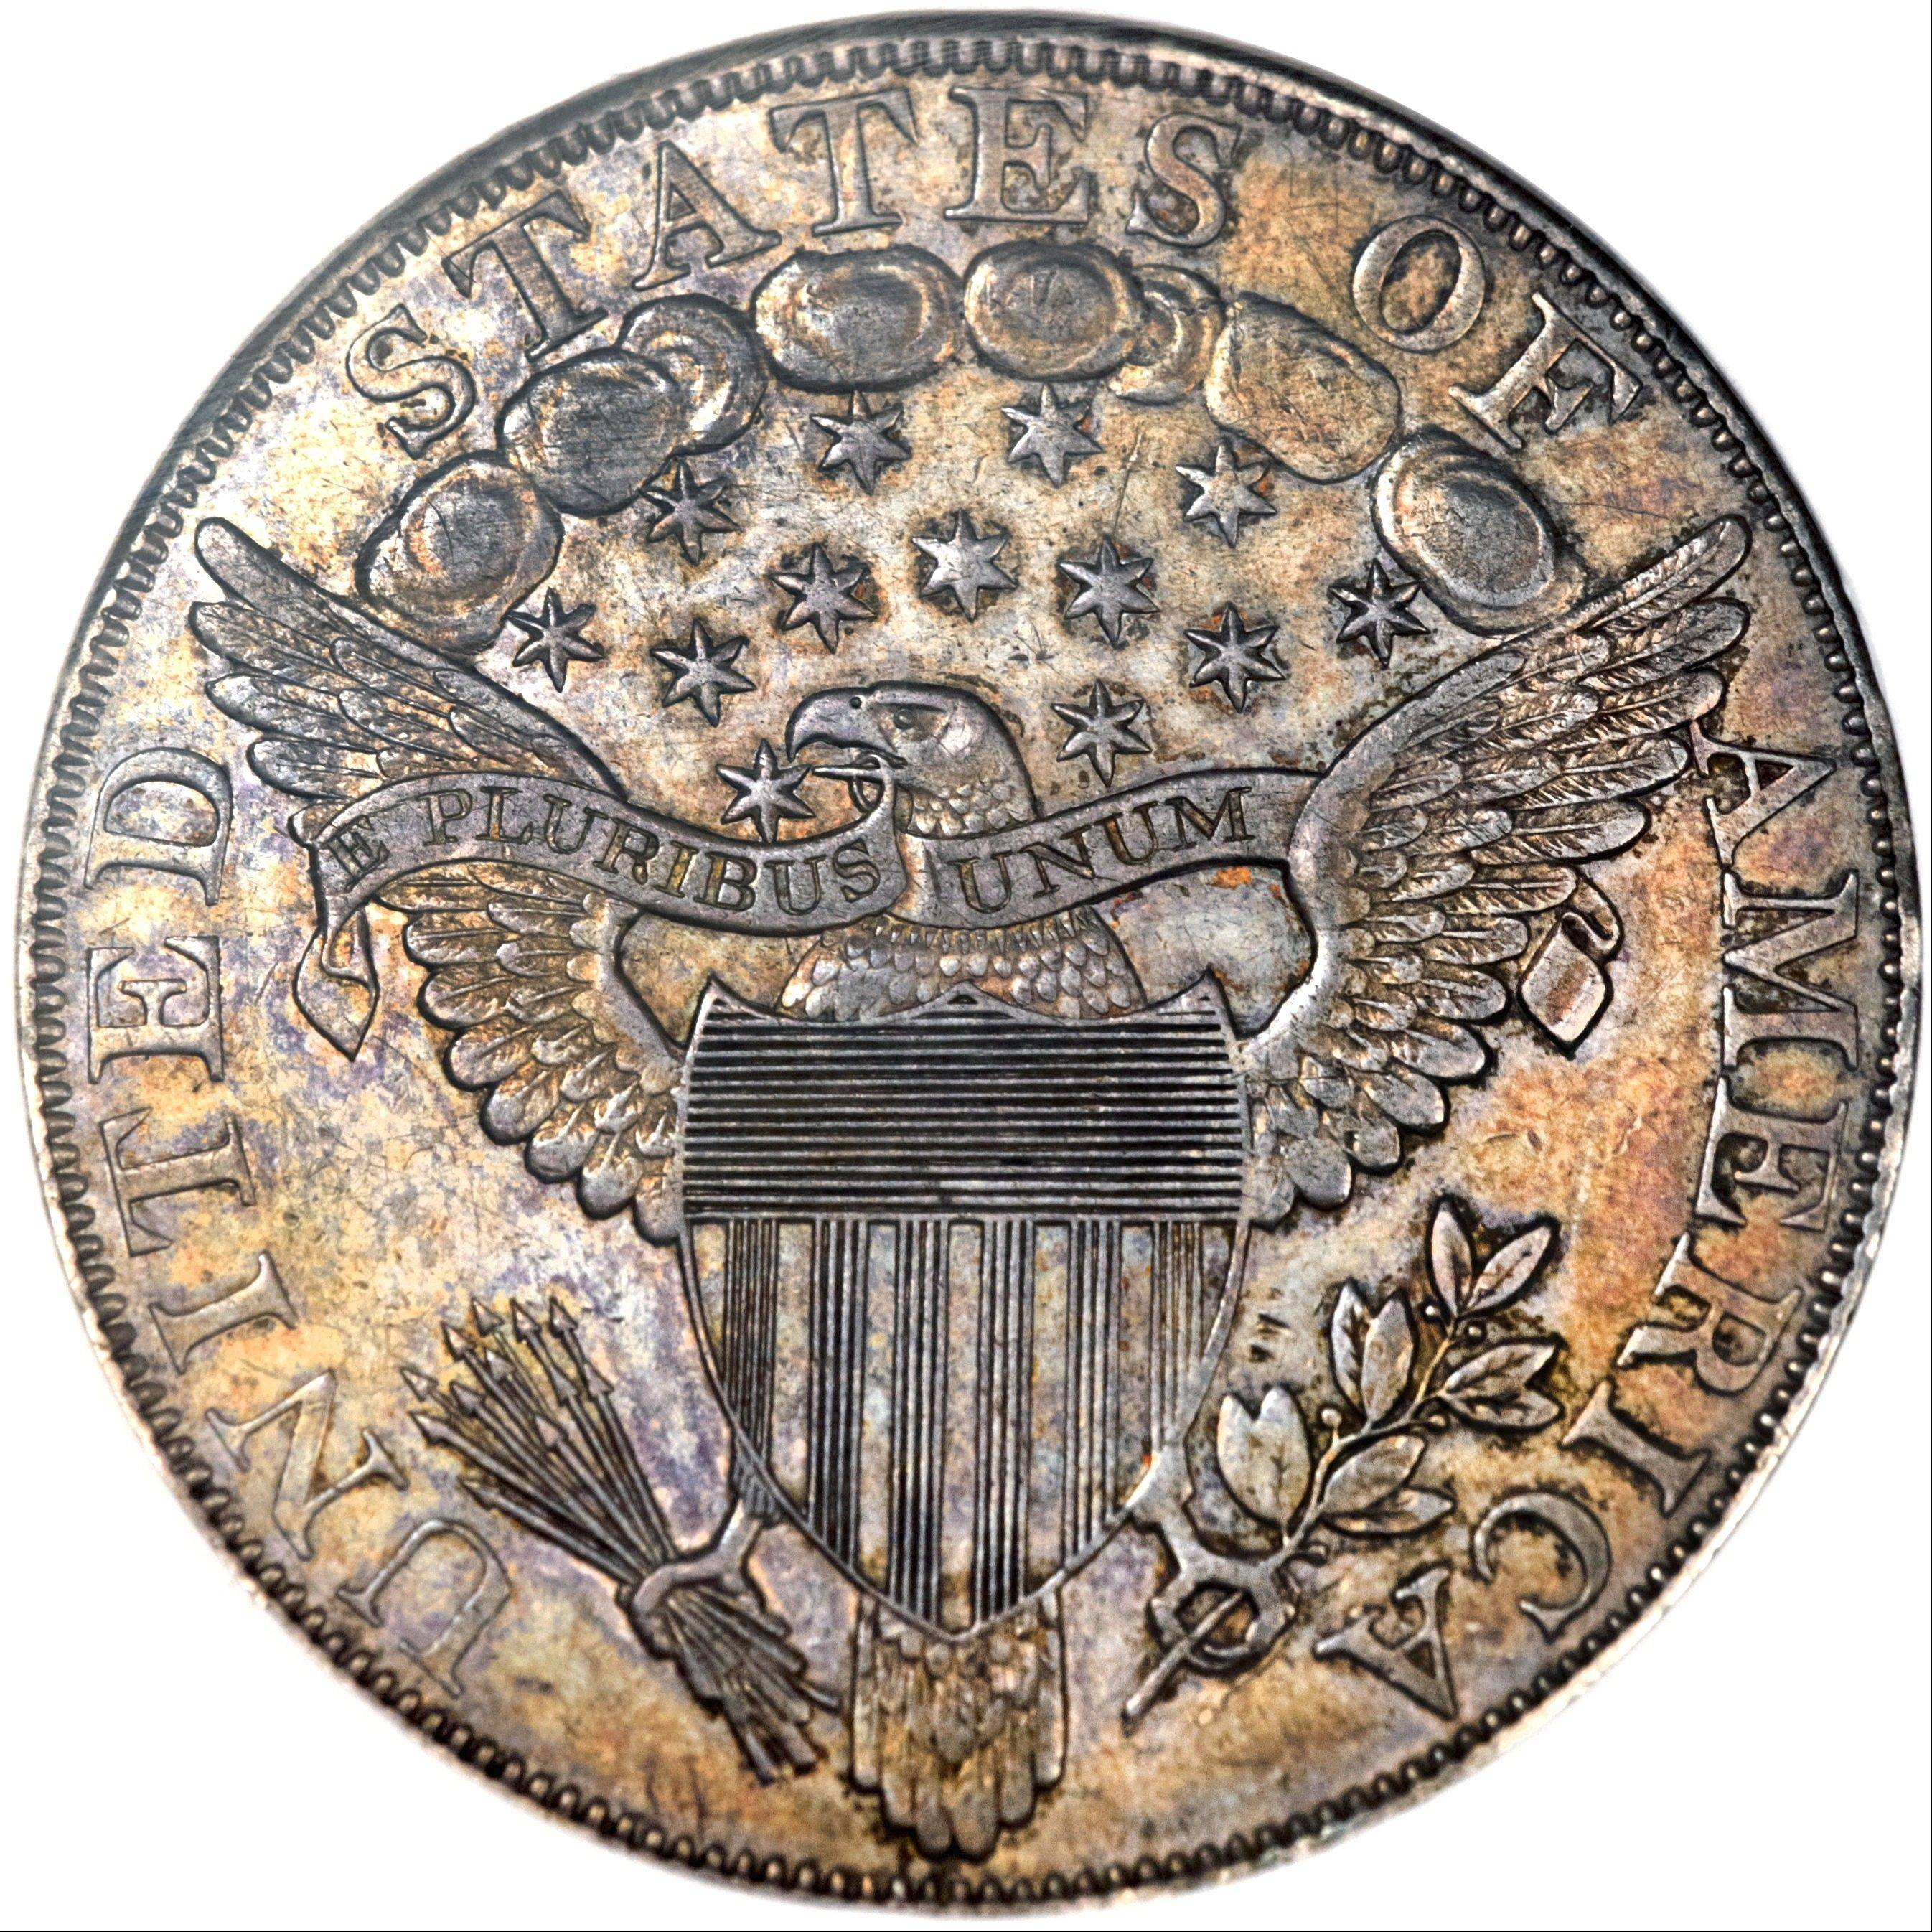 "Known as ""The King of Coins,"" this U.S. silver dollar is dated 1804 but actually was made decades later on behalf of President Andrew Jackson. It is expected to sell for more than $3 million in a public auction conducted by Heritage Auctions in Rosemont on Friday, Aug. 9."